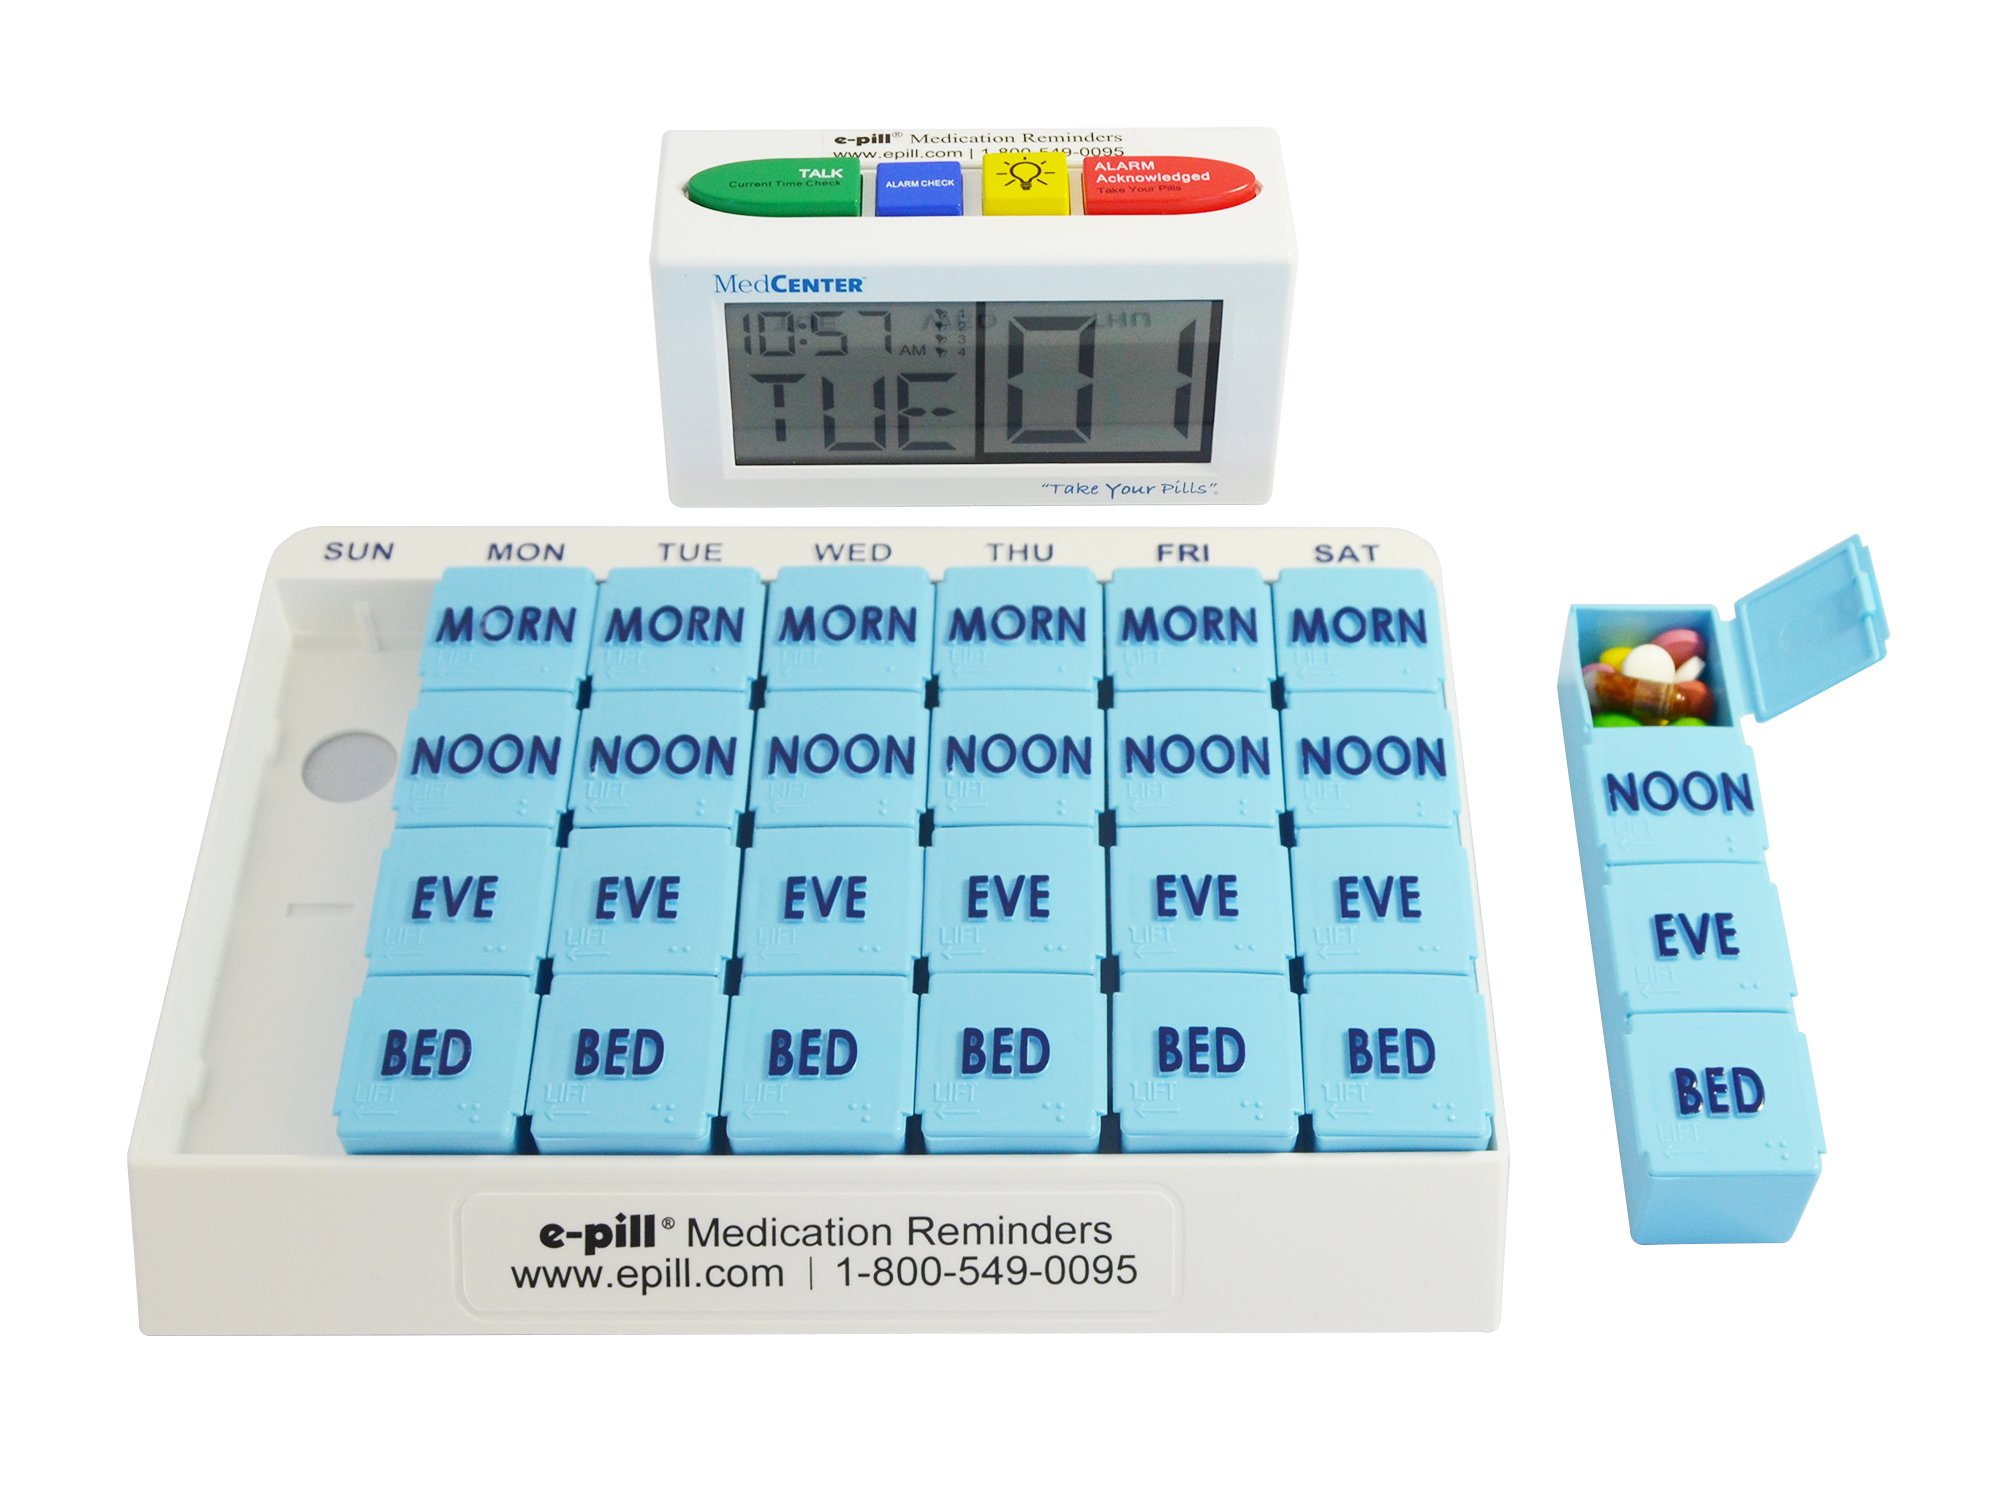 e-Pill | MedCenter Talk, Large Display, Up to 4 Alarms with 4 Compartment x 7 Day Pill Organizer, Large Capacity by e-pill Medication Reminders